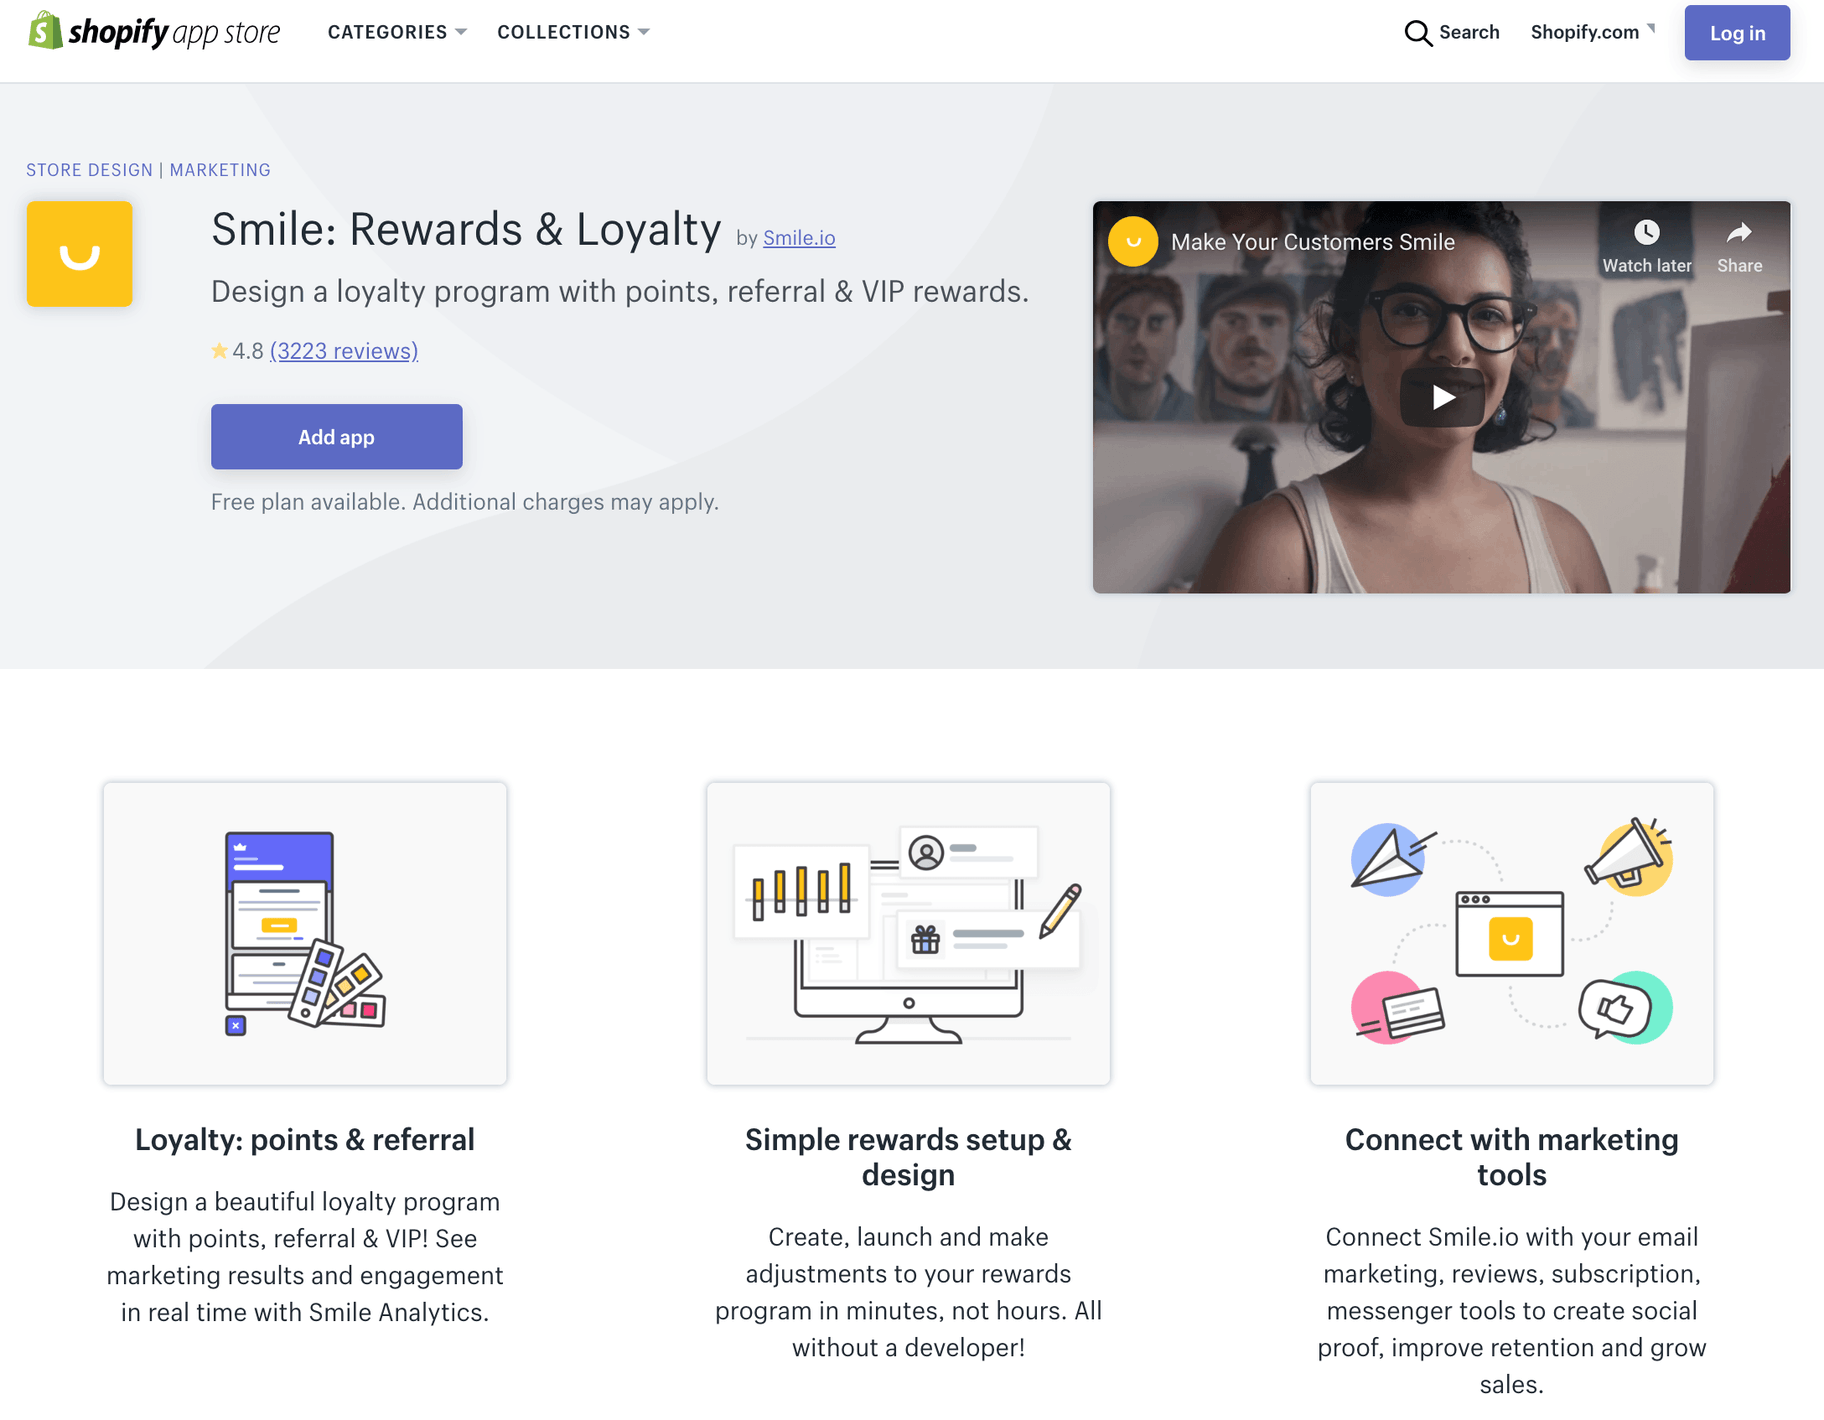 Smile: Rewards and Loyalty by Smile.io